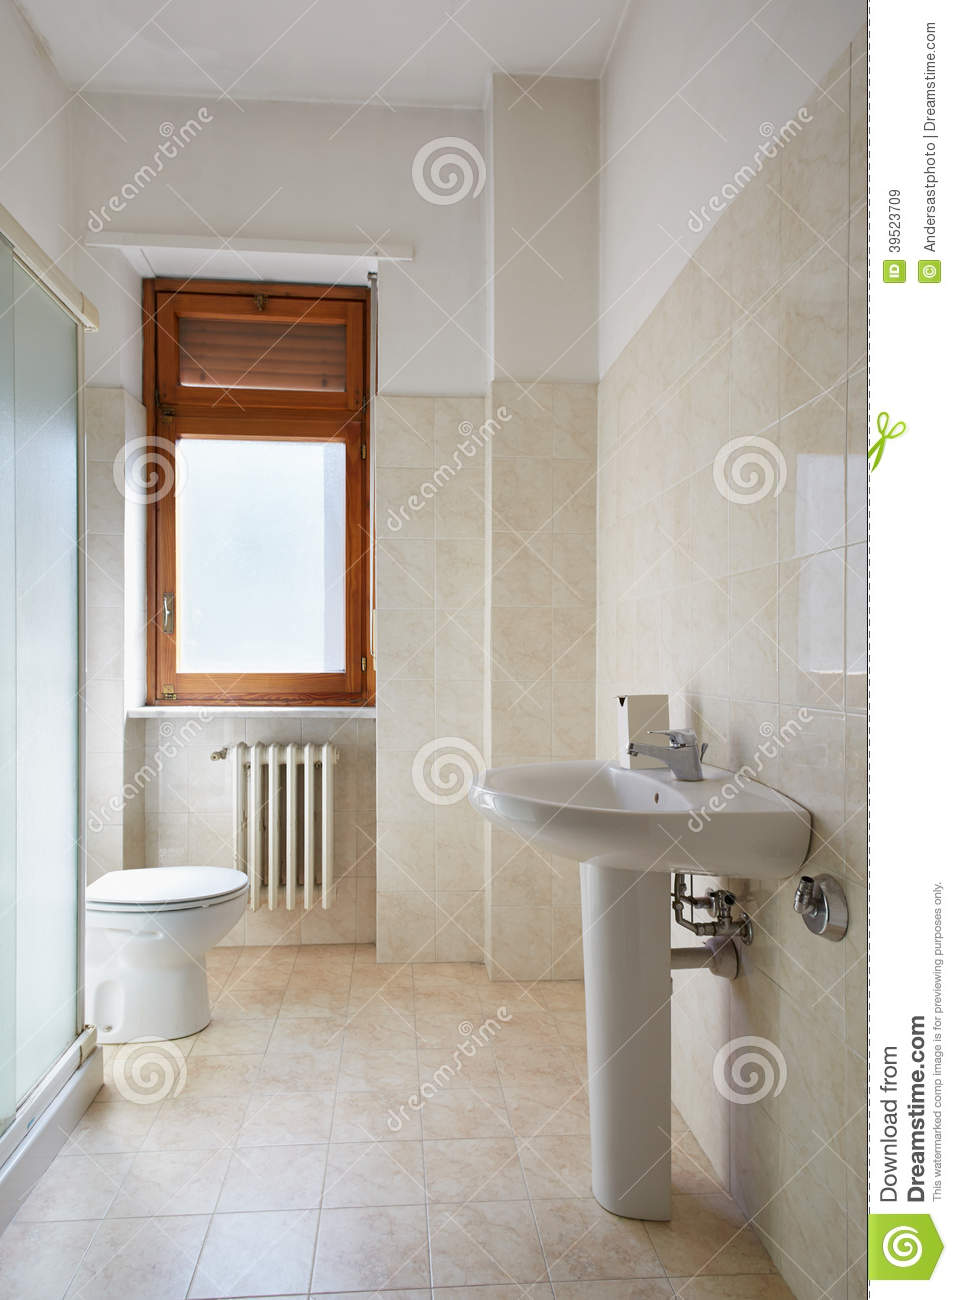 Simple Bathroom In Normal Apartment Stock Photo Image 39523709